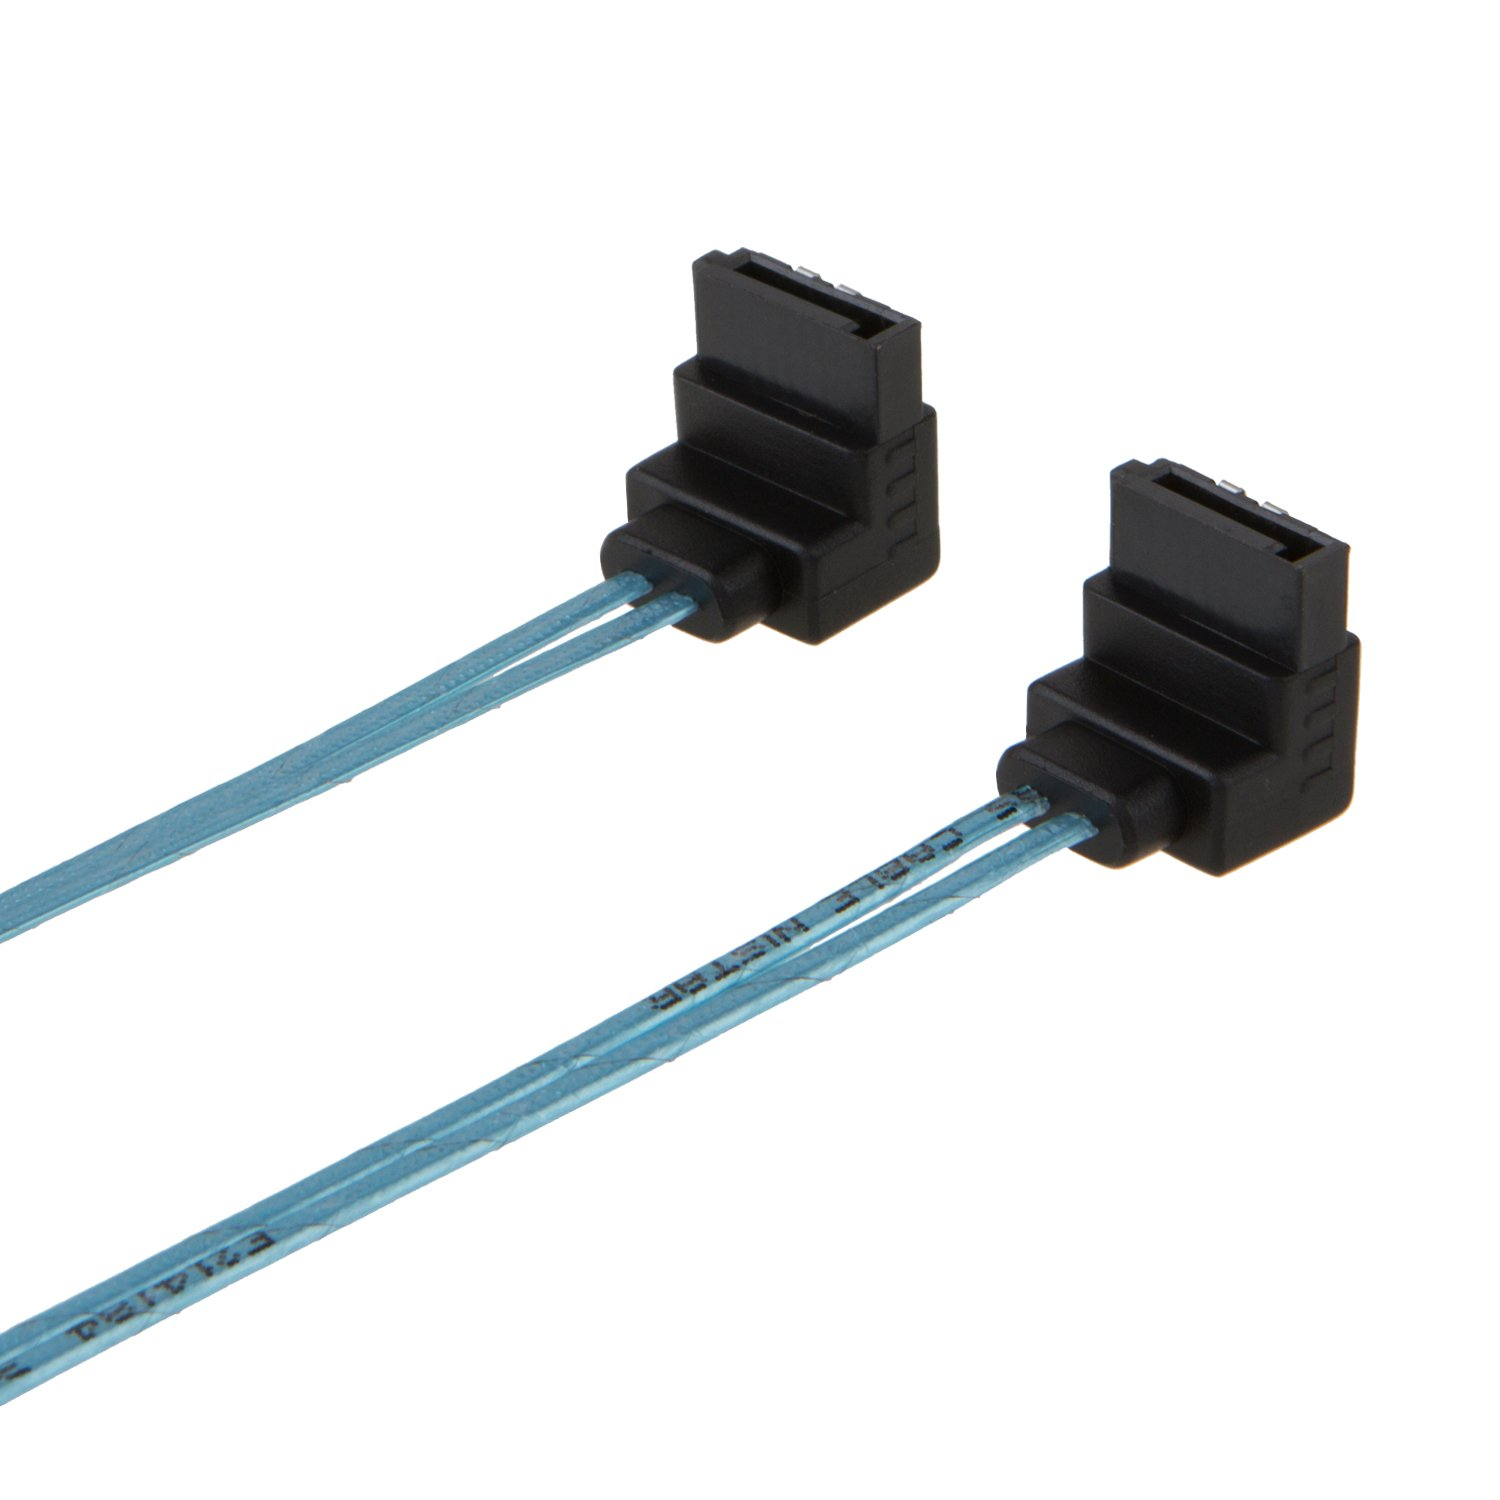 18-inch SATA III 6.0 Gbps 7pin Female to Female Data Cable with Locking Latch 2-Pack CableCreation Blue SATA III Cable